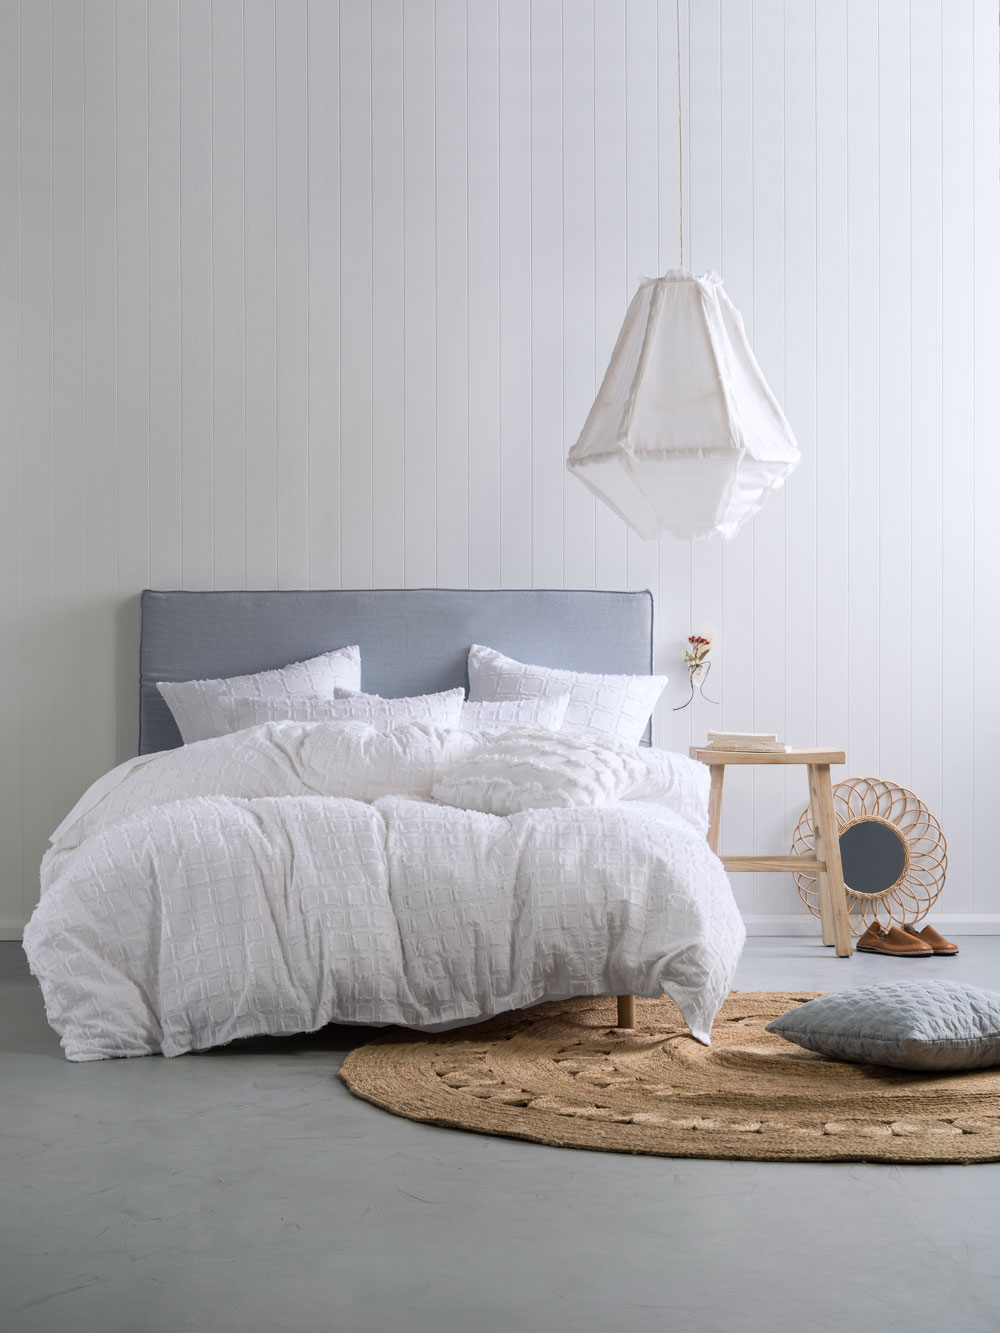 White Timber Panel Bedroom With Concrete Floor And Grey Upholstered  Headboard And Jute Rug